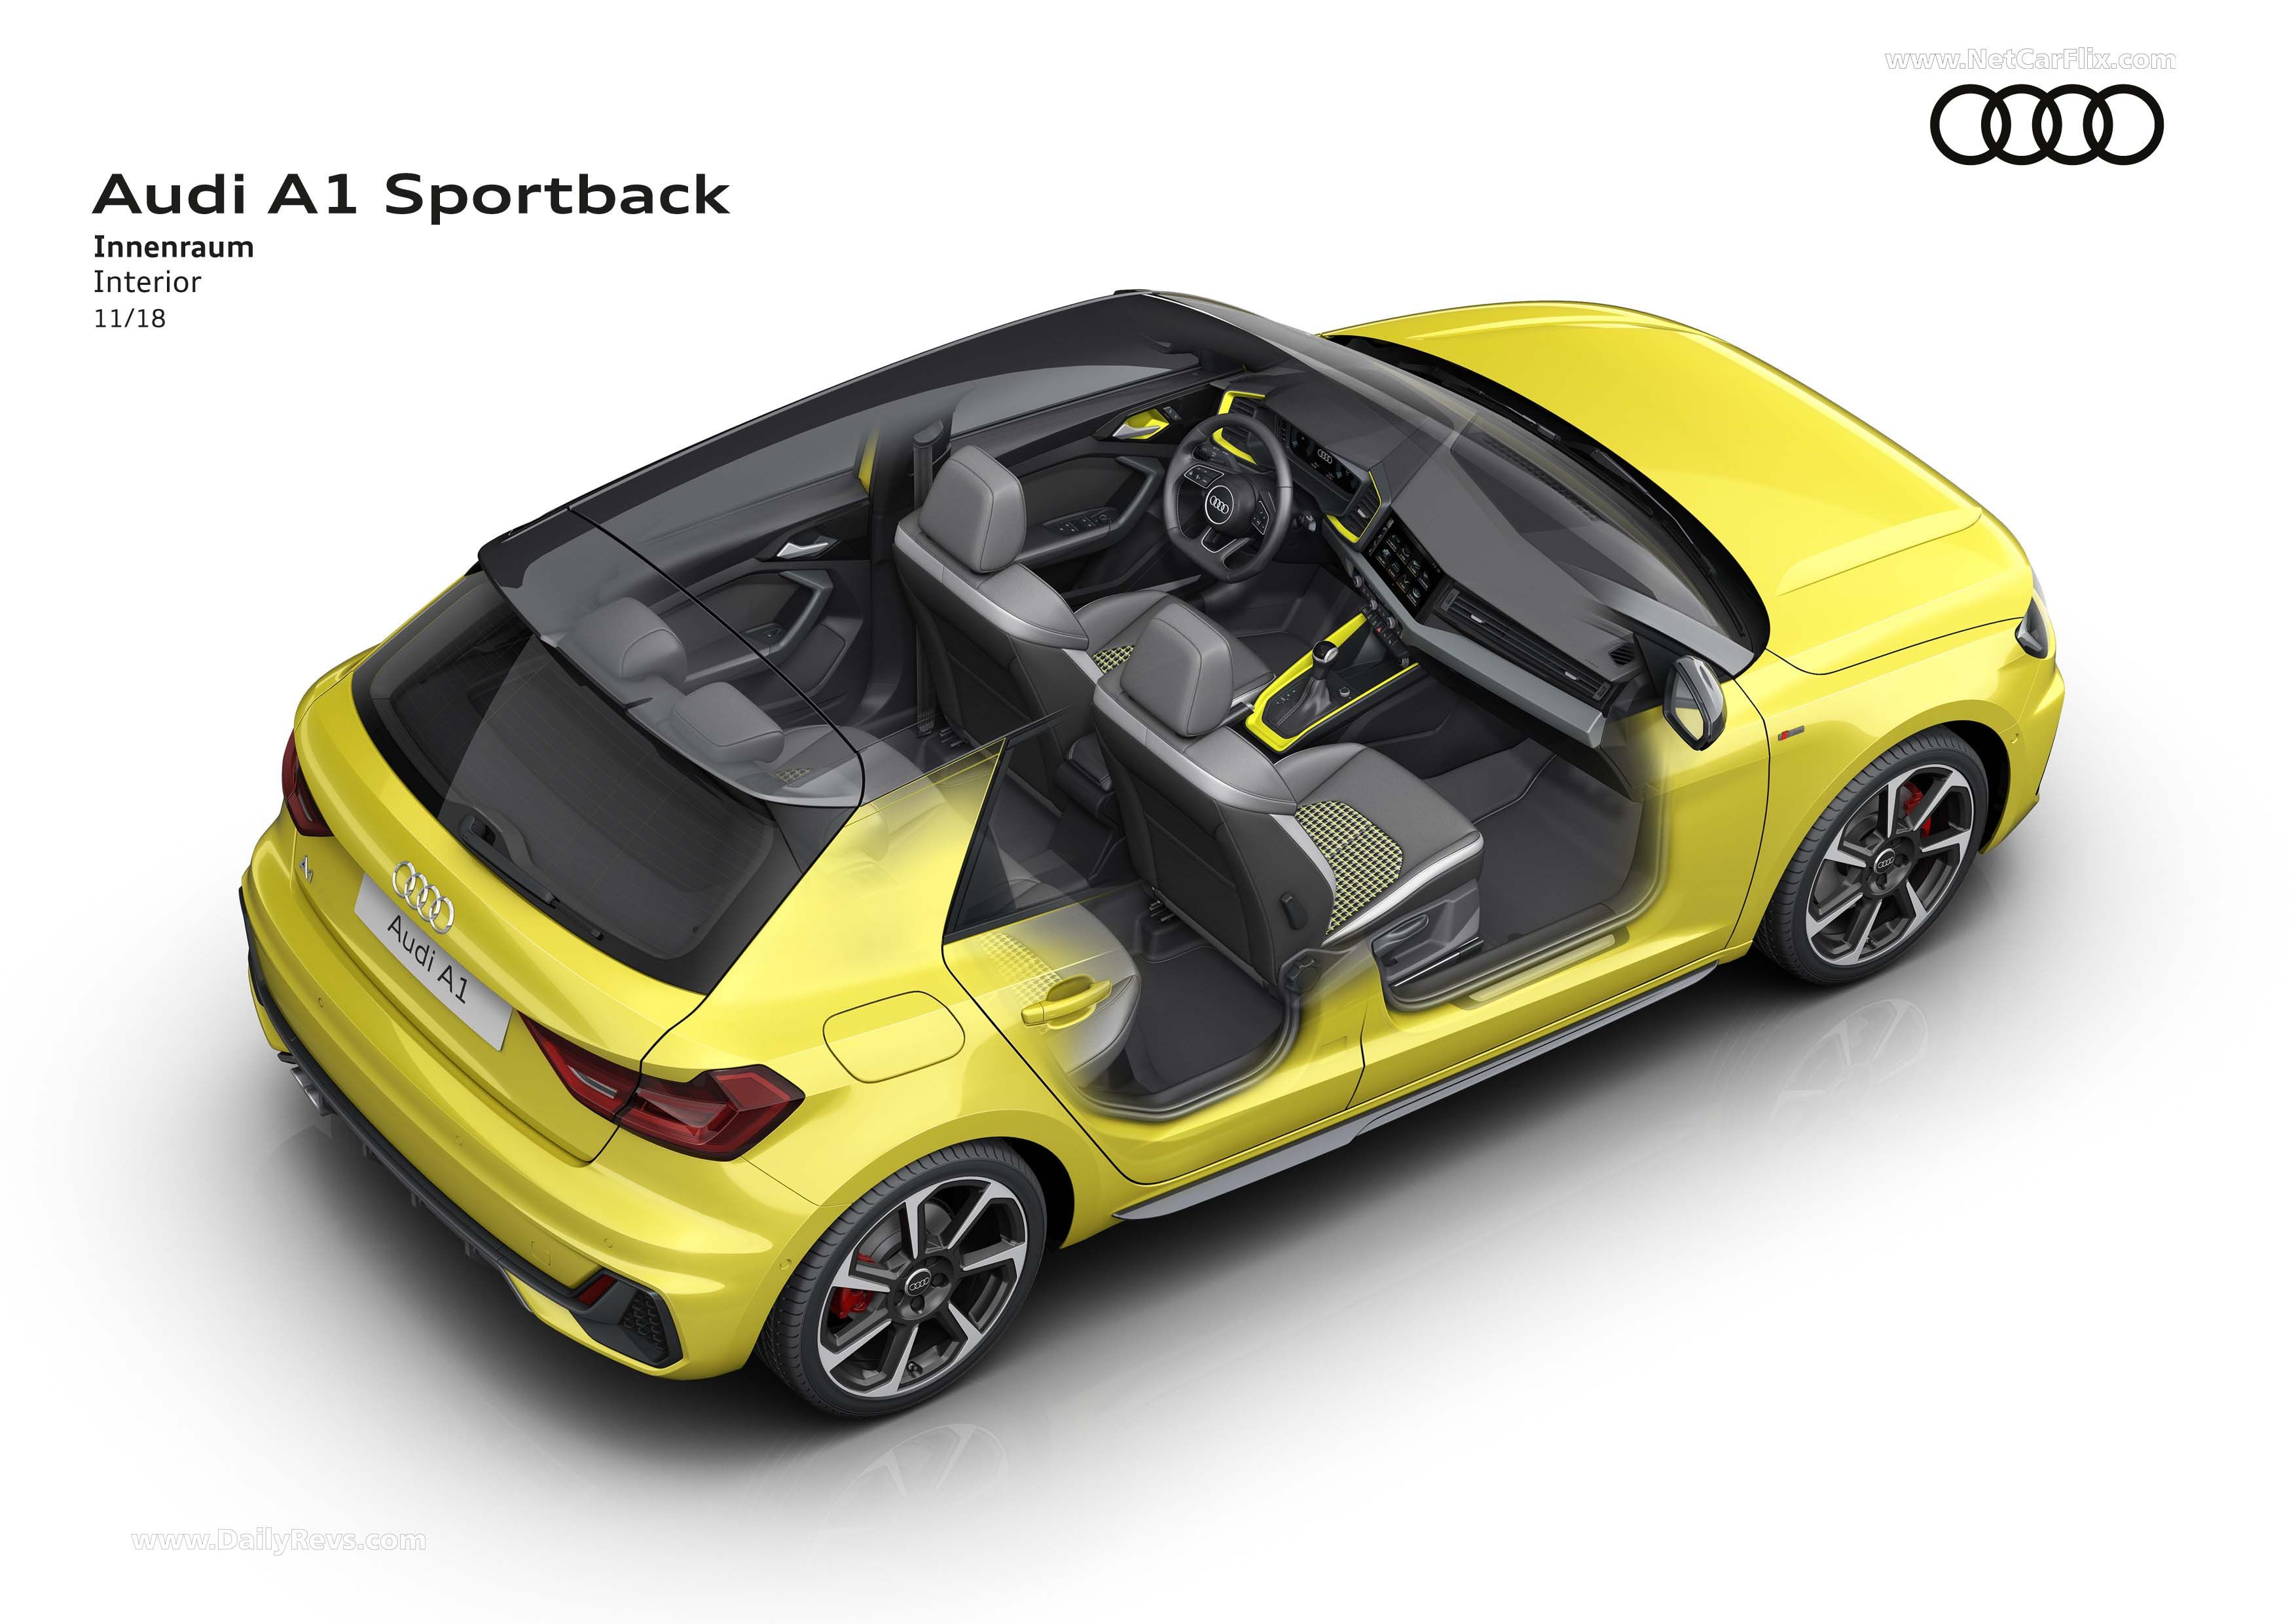 2019 Audi A1 Sportback Hd Images Specs Information And Videos